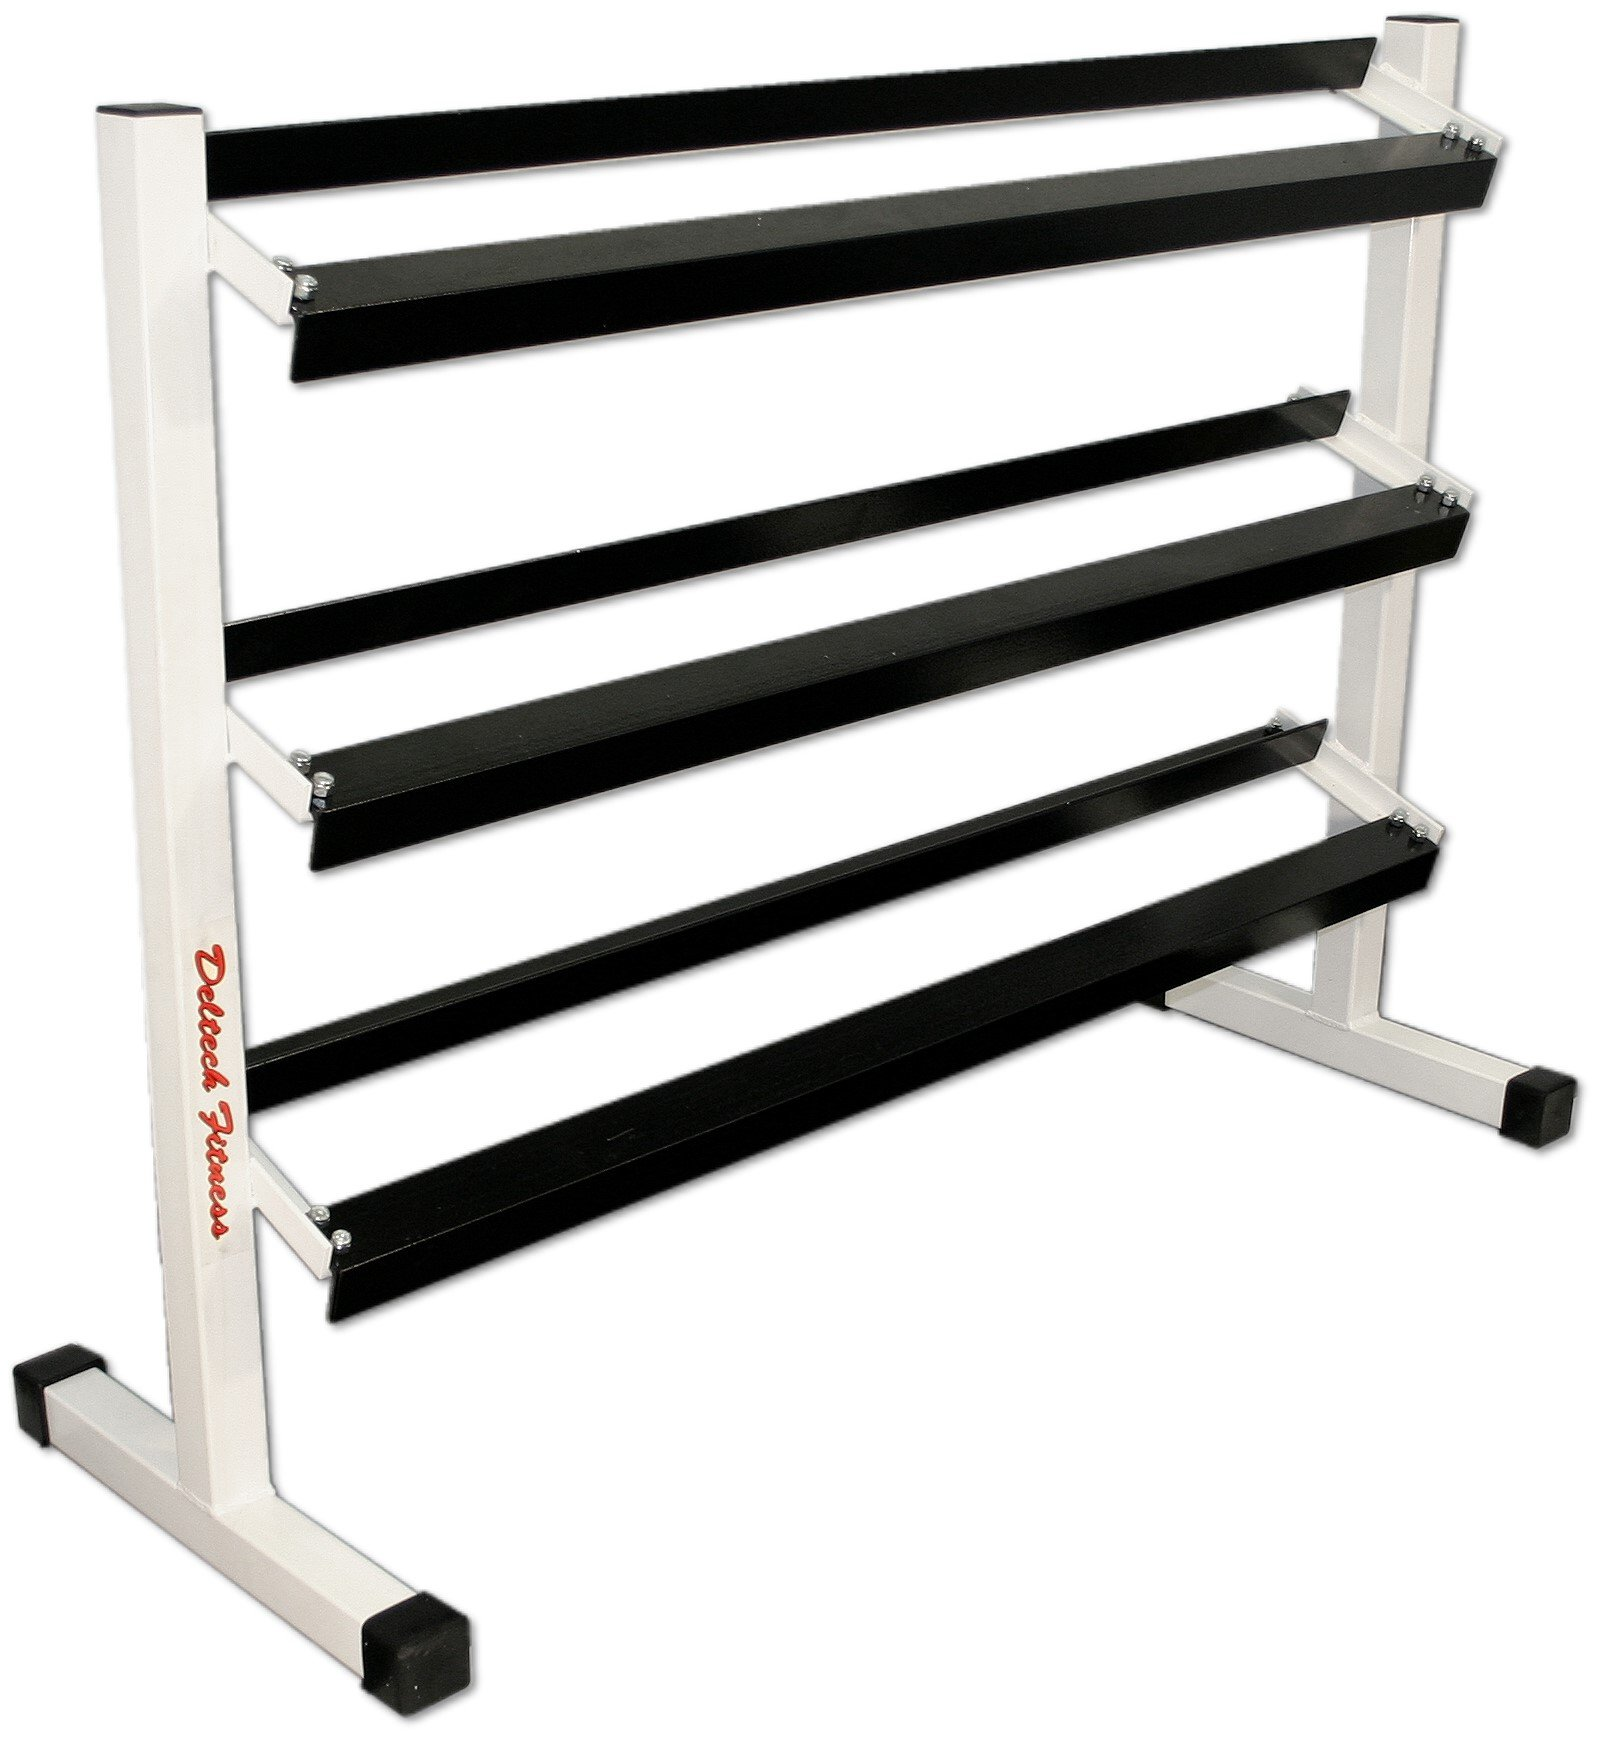 Deltech Fitness Three Tier 54'' Dumbbell Rack by Deltech Fitness (Image #2)